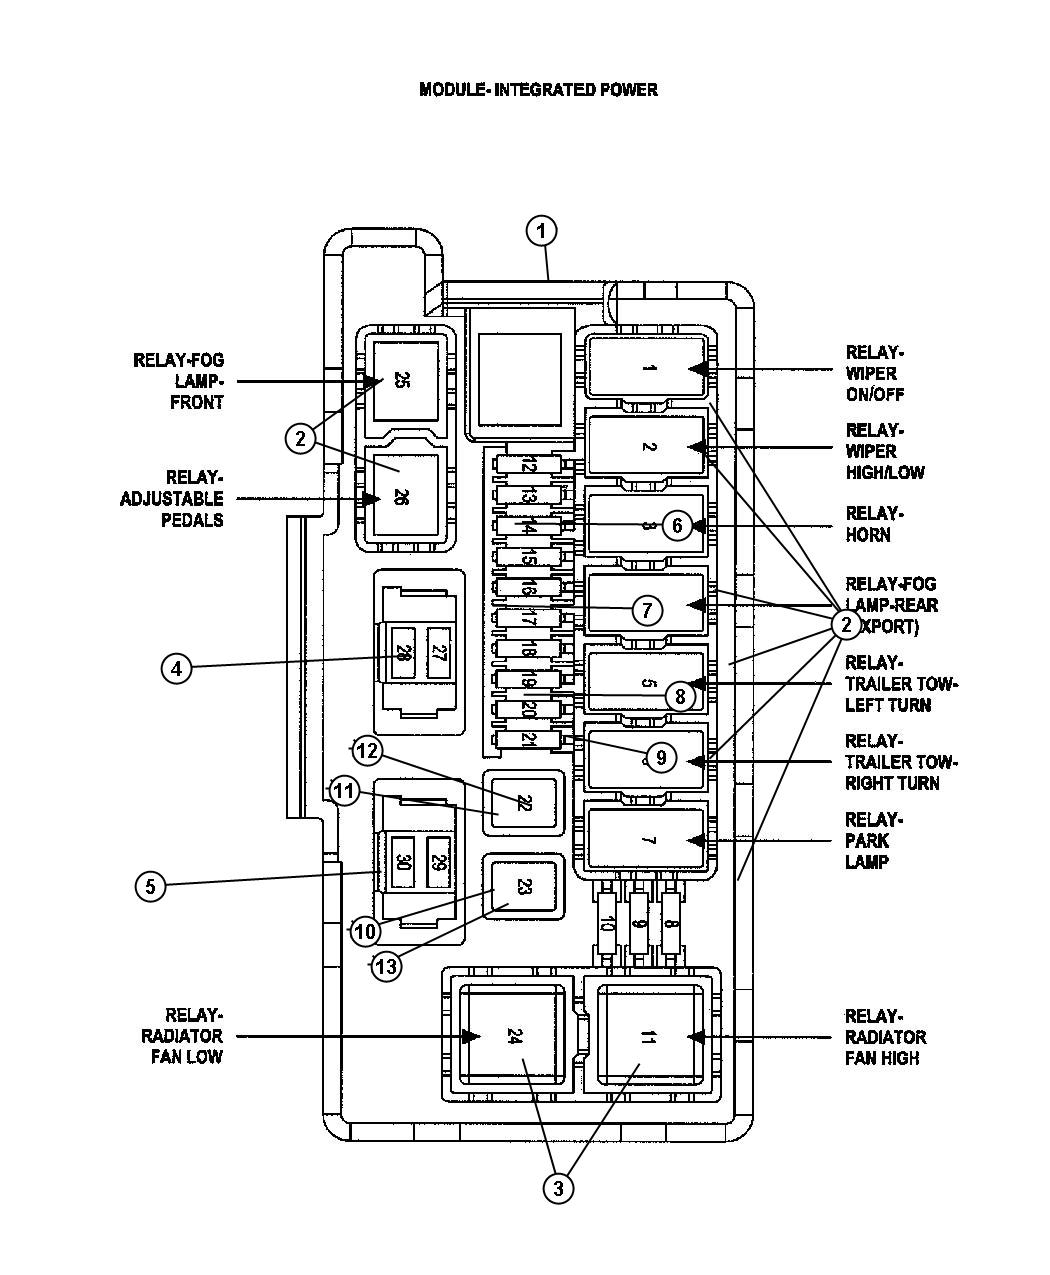 jeep cherokee sport wiring diagram jeep discover your wiring 2007 jeep liberty power seats fuse box